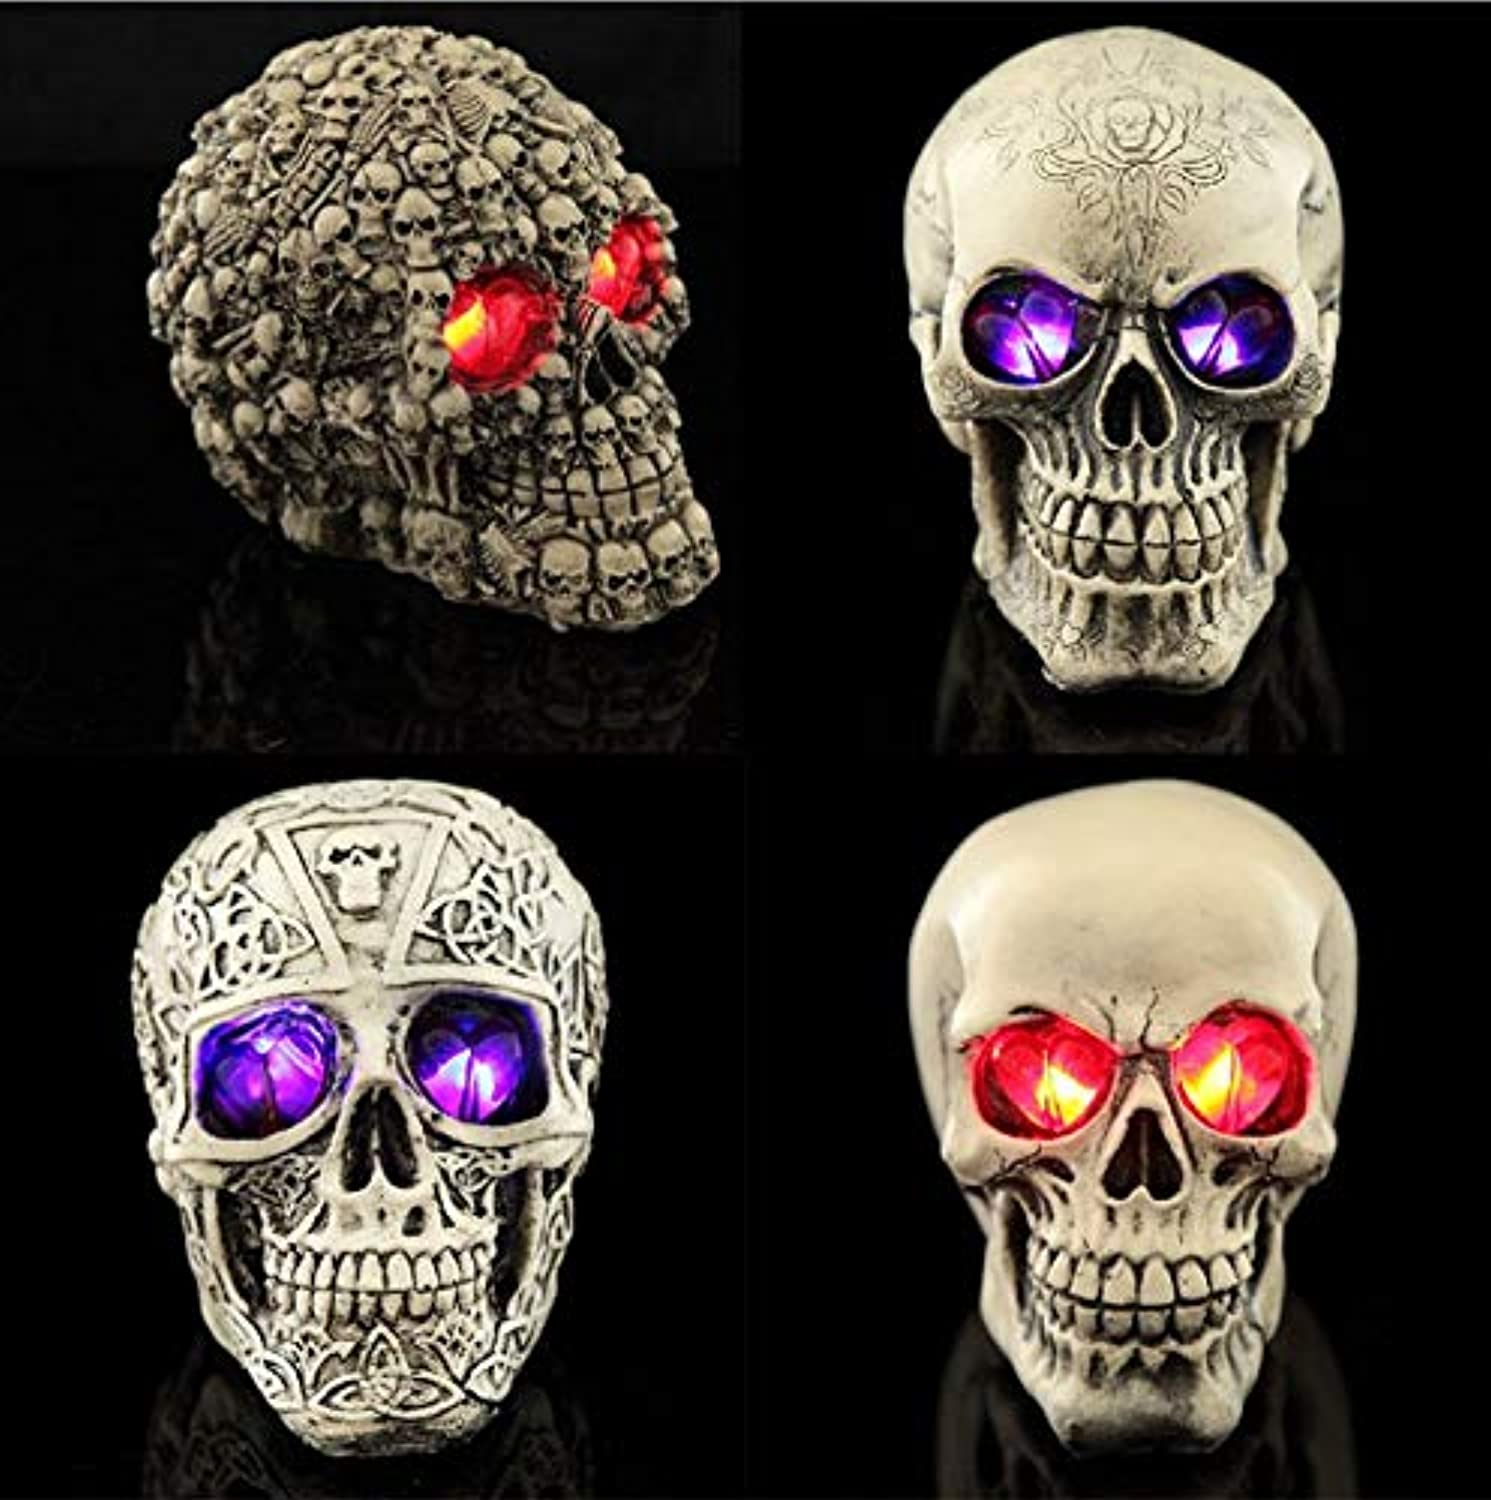 Freedom Halloween Table Decorations LED Resin Skull for Halloween Bar Table Decorations Haunted House Ornament Skull Eyes Flash Birthday Party Decoration (4Pack mixing)